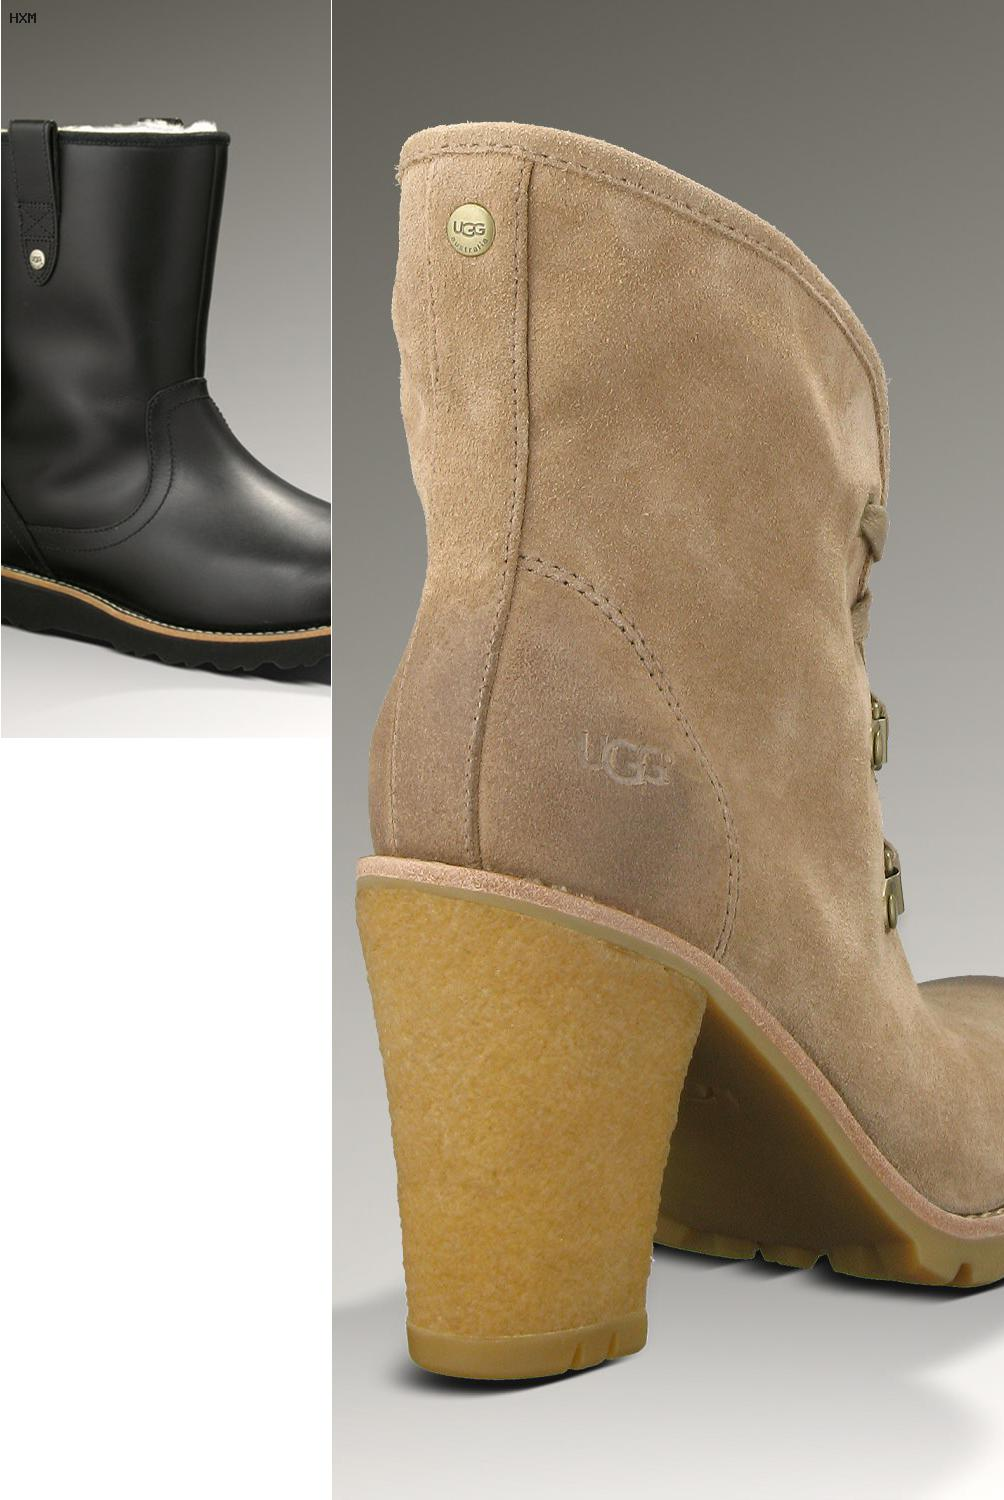 ugg boots new collection